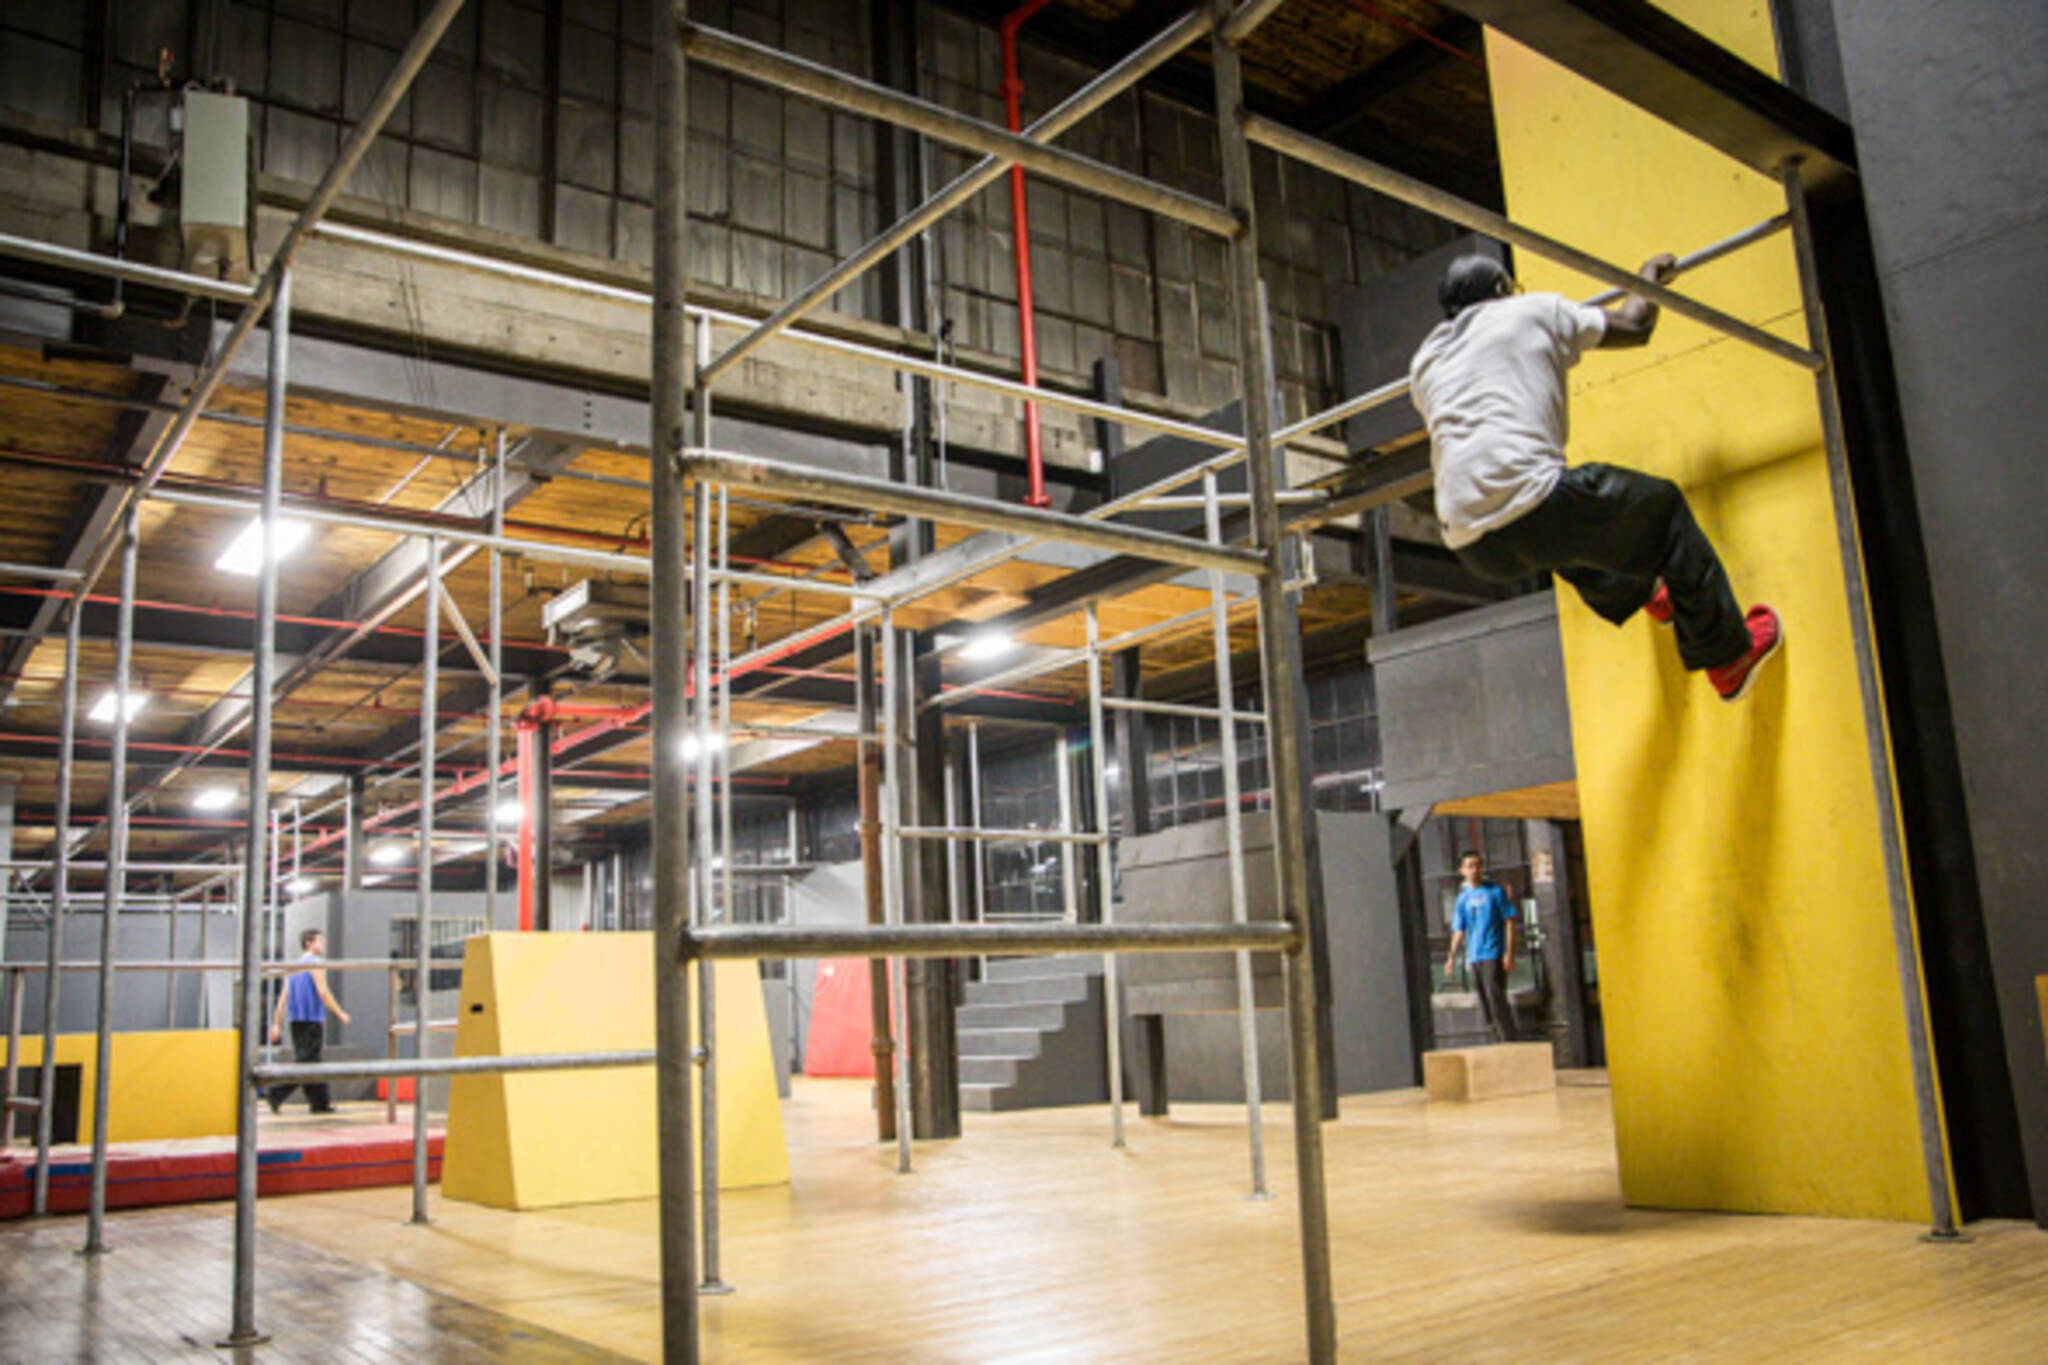 Where to learn parkour in Toronto